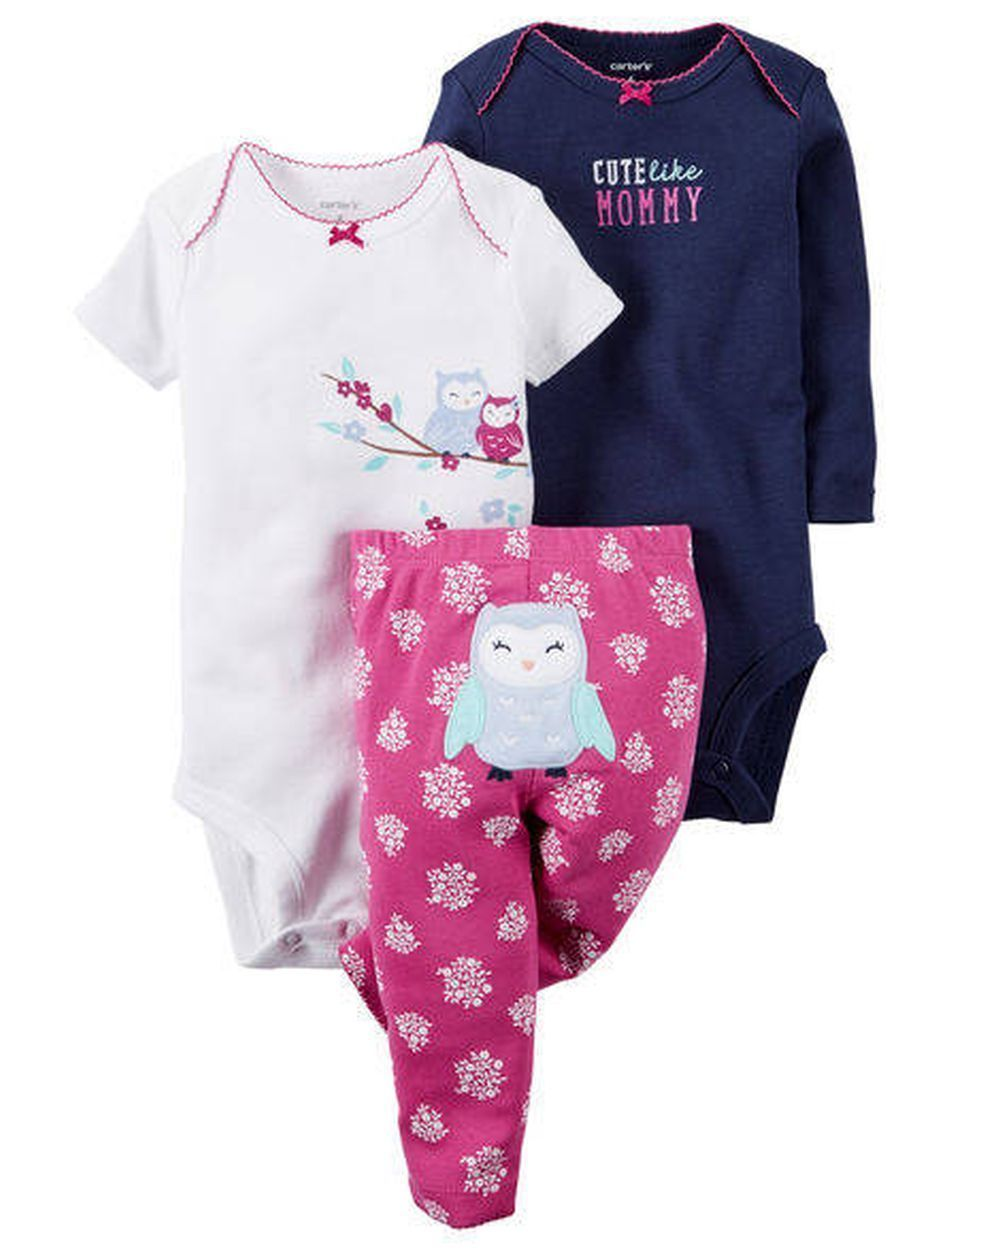 Carters 4 piece Baby Gift Set 3m,6m,9m Oneis /& Outfit New